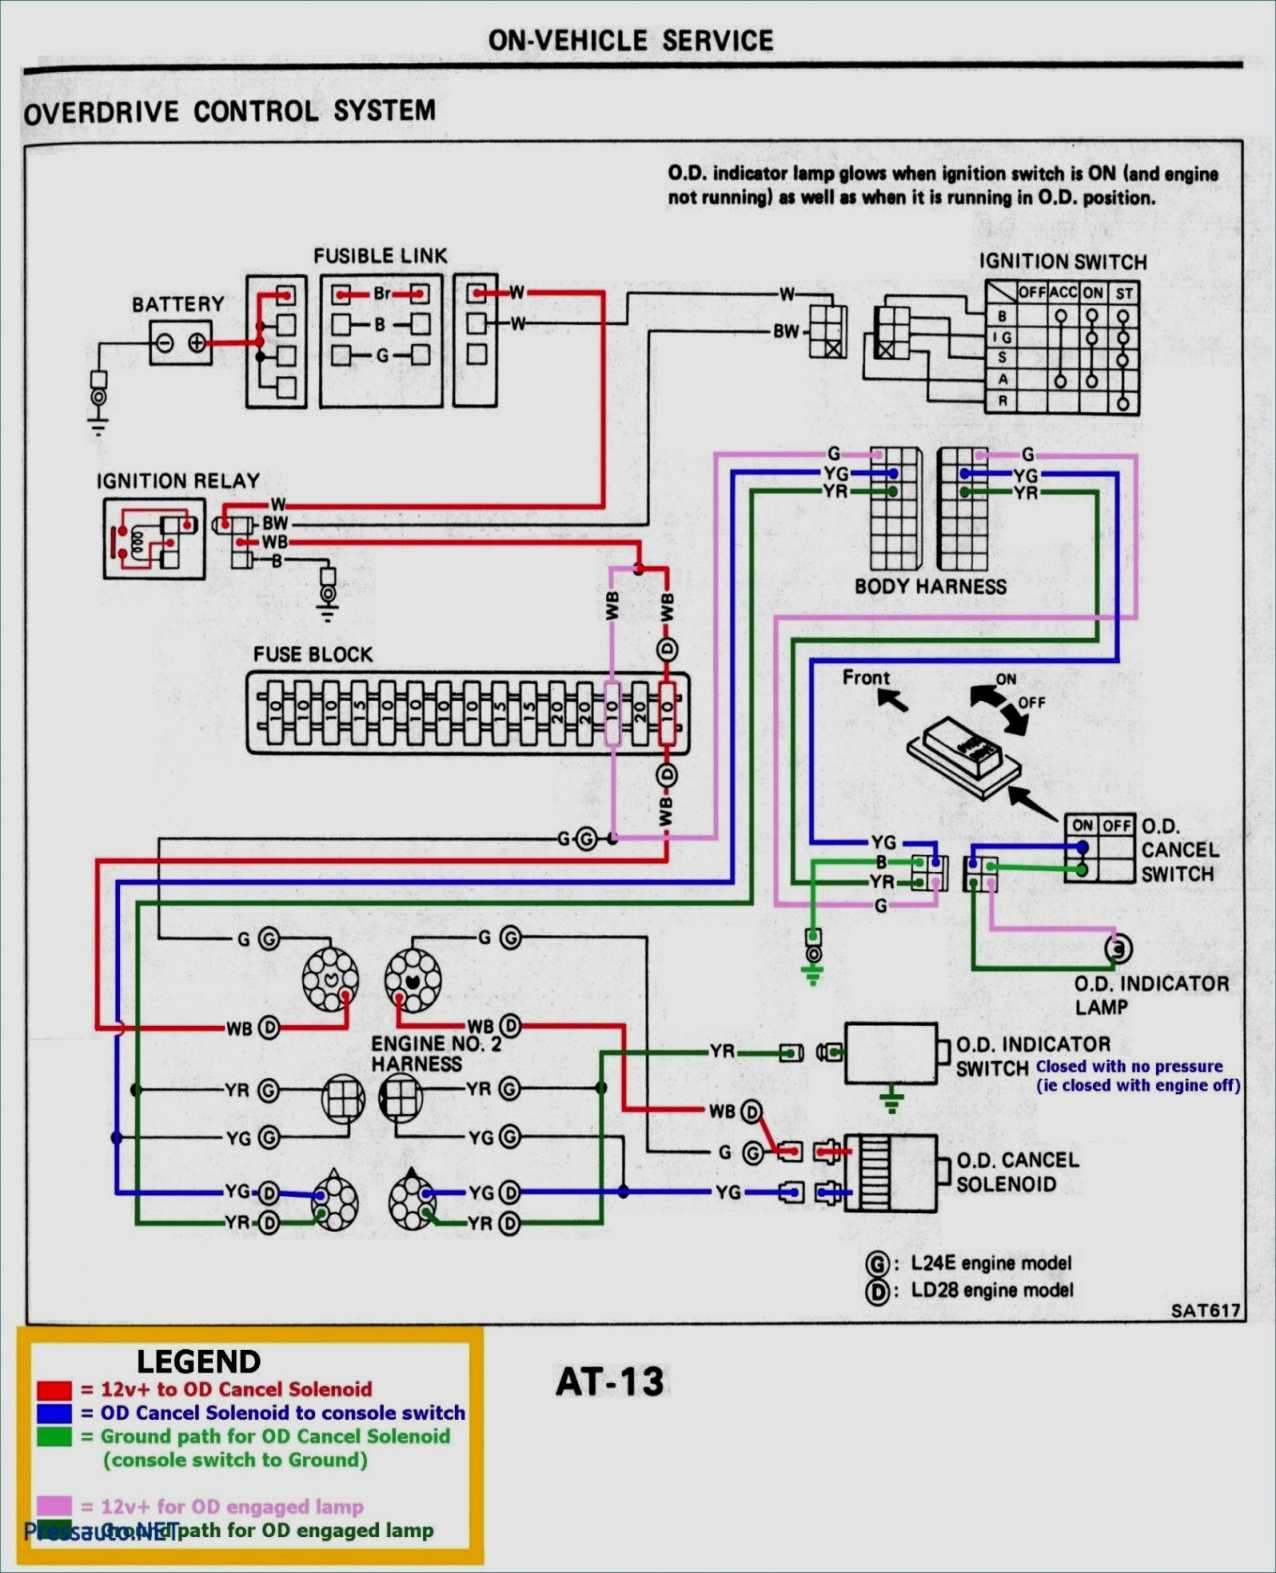 Superwinch Solenoid Switch Wiring Diagram | Wiring Diagram - Atv Starter Solenoid Wiring Diagram